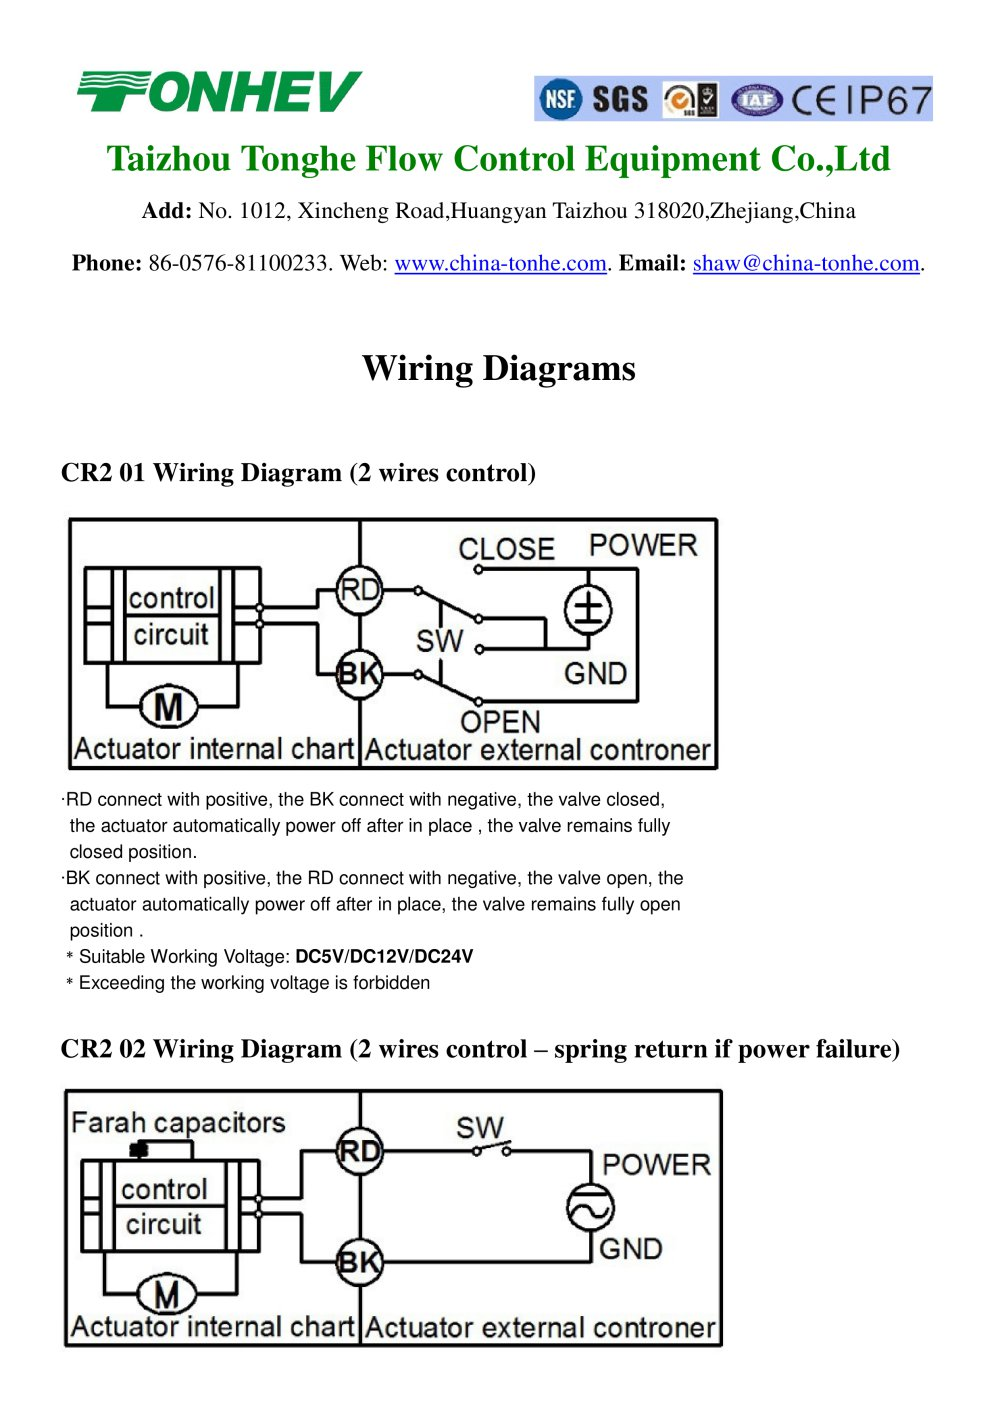 Tonhe Motorized Valve Wiring Diagrams - 1 / 4 Pages